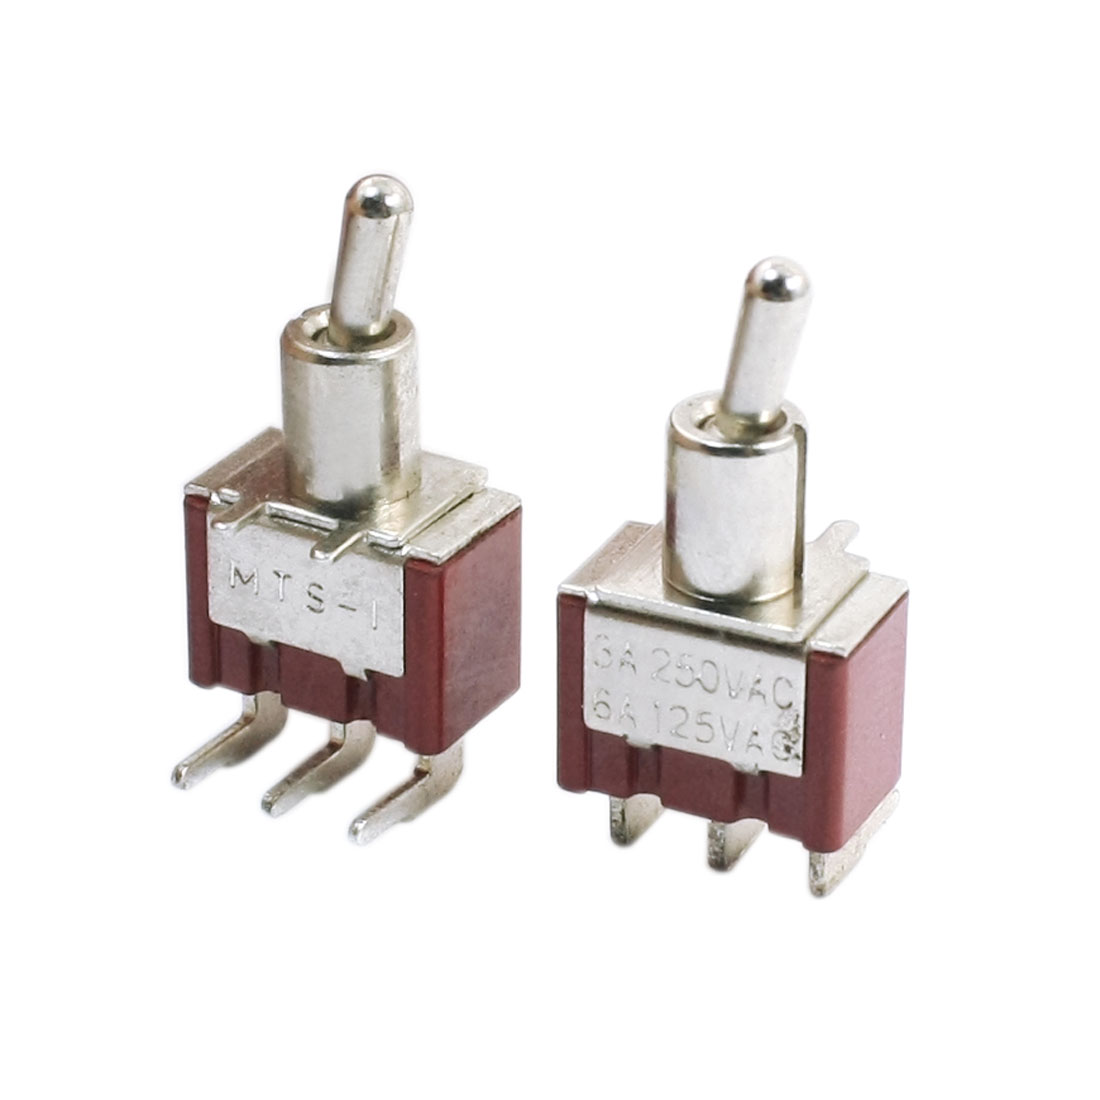 2Pcs Red 2 Positions Three 90 Degree Pin SPDT ON-ON Mini Toggle Switch 6A AC125V 3A AC250V